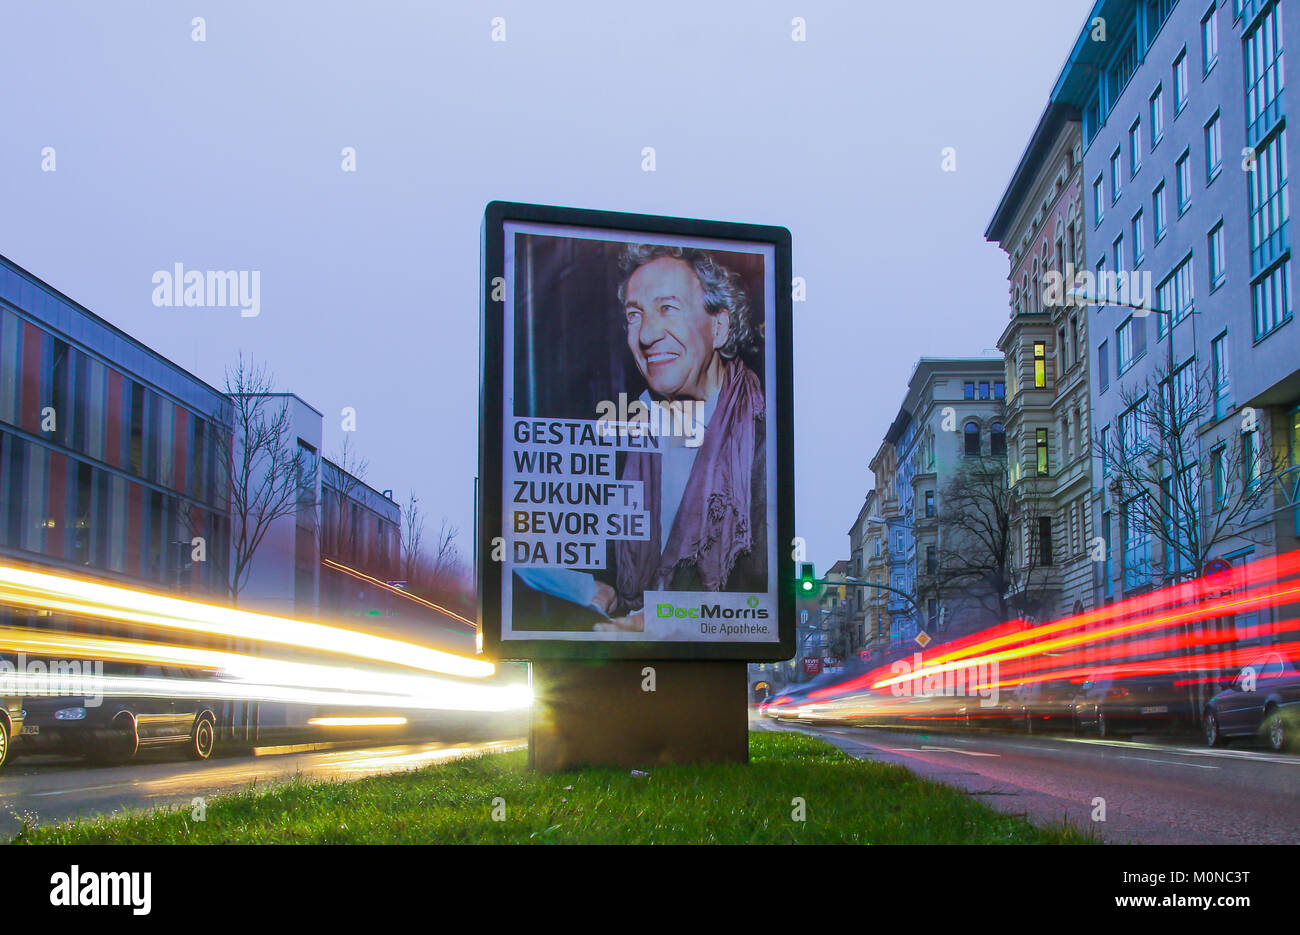 Shaping the future: Curious advertising of the Doc Morris Internet pharmacy. - Stock Image